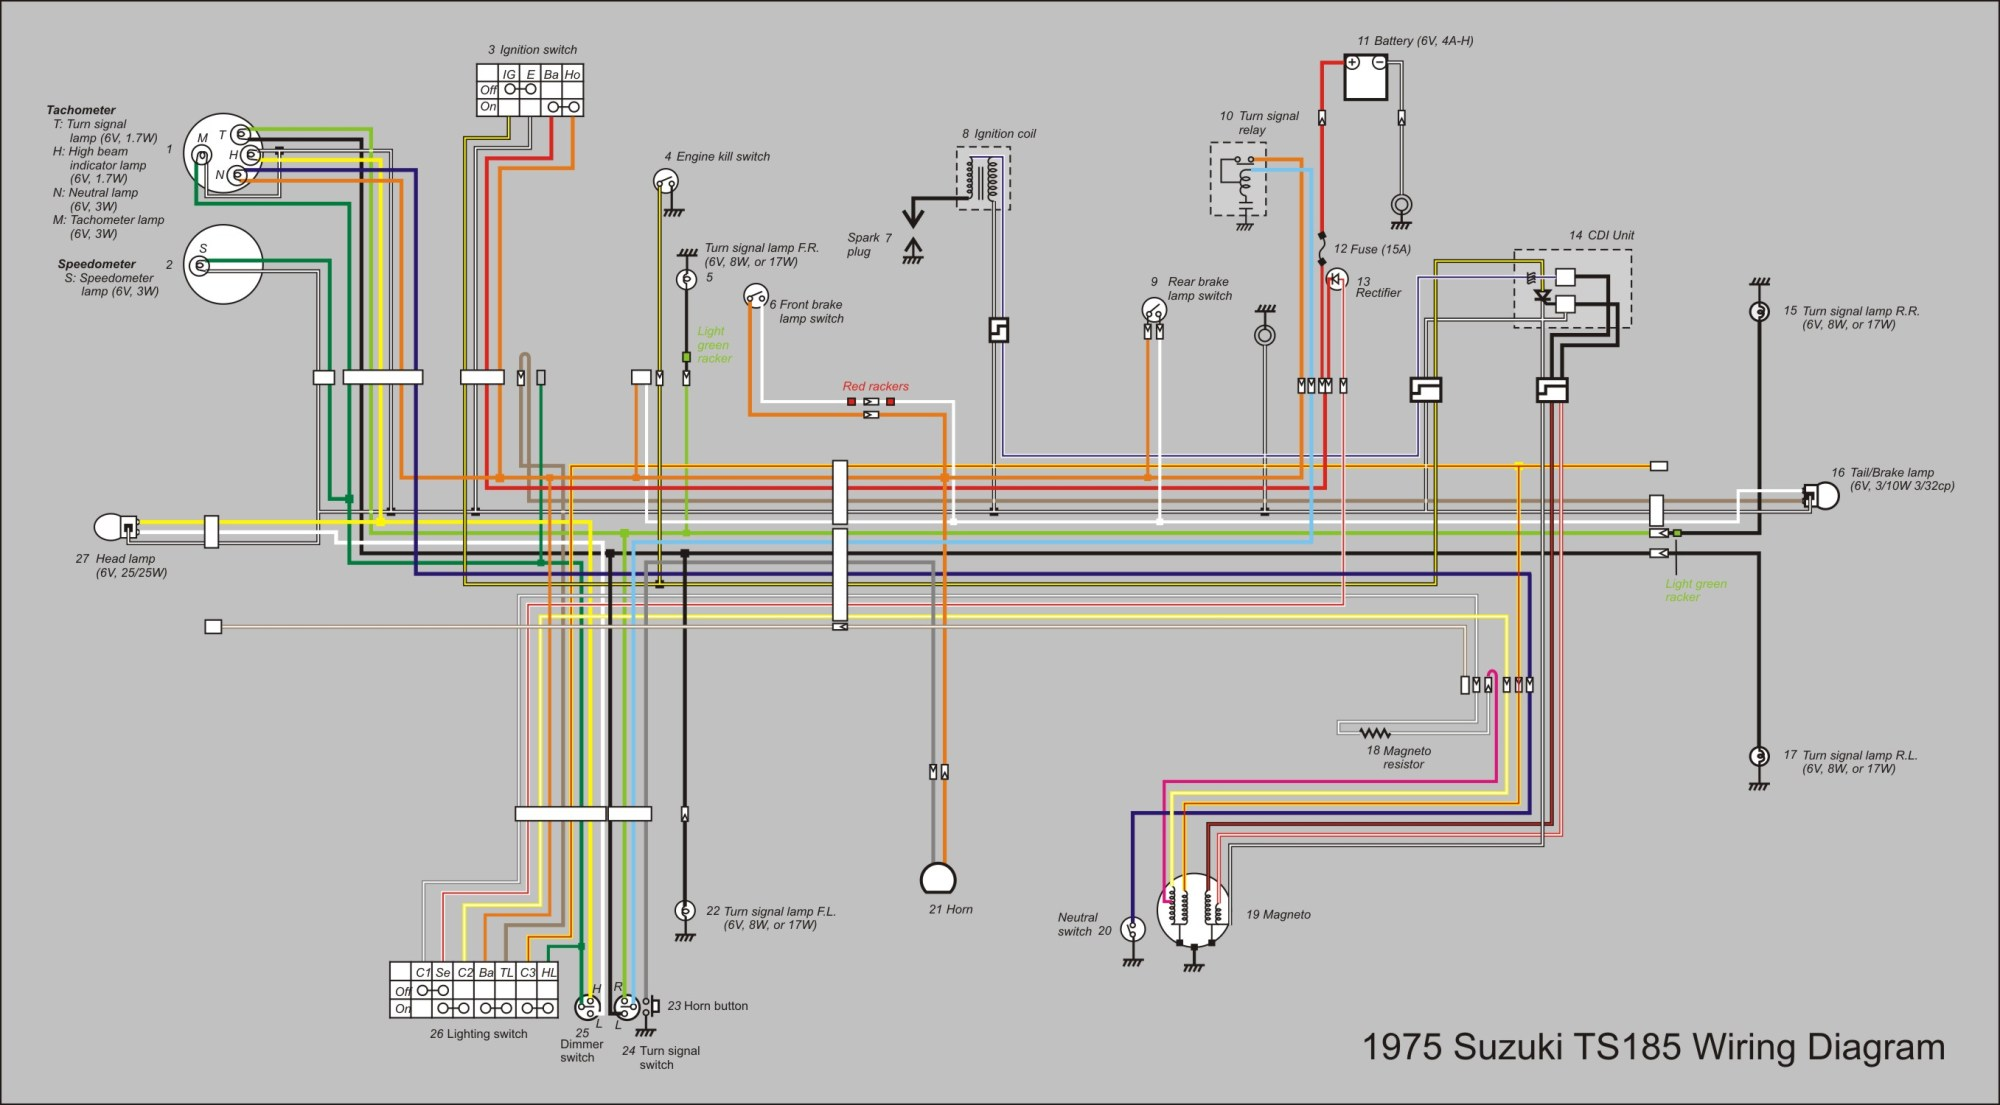 hight resolution of file ts185 wiring diagram new jpg wikimedia commons suzuki savage wiring schematic suzuki wiring schematics